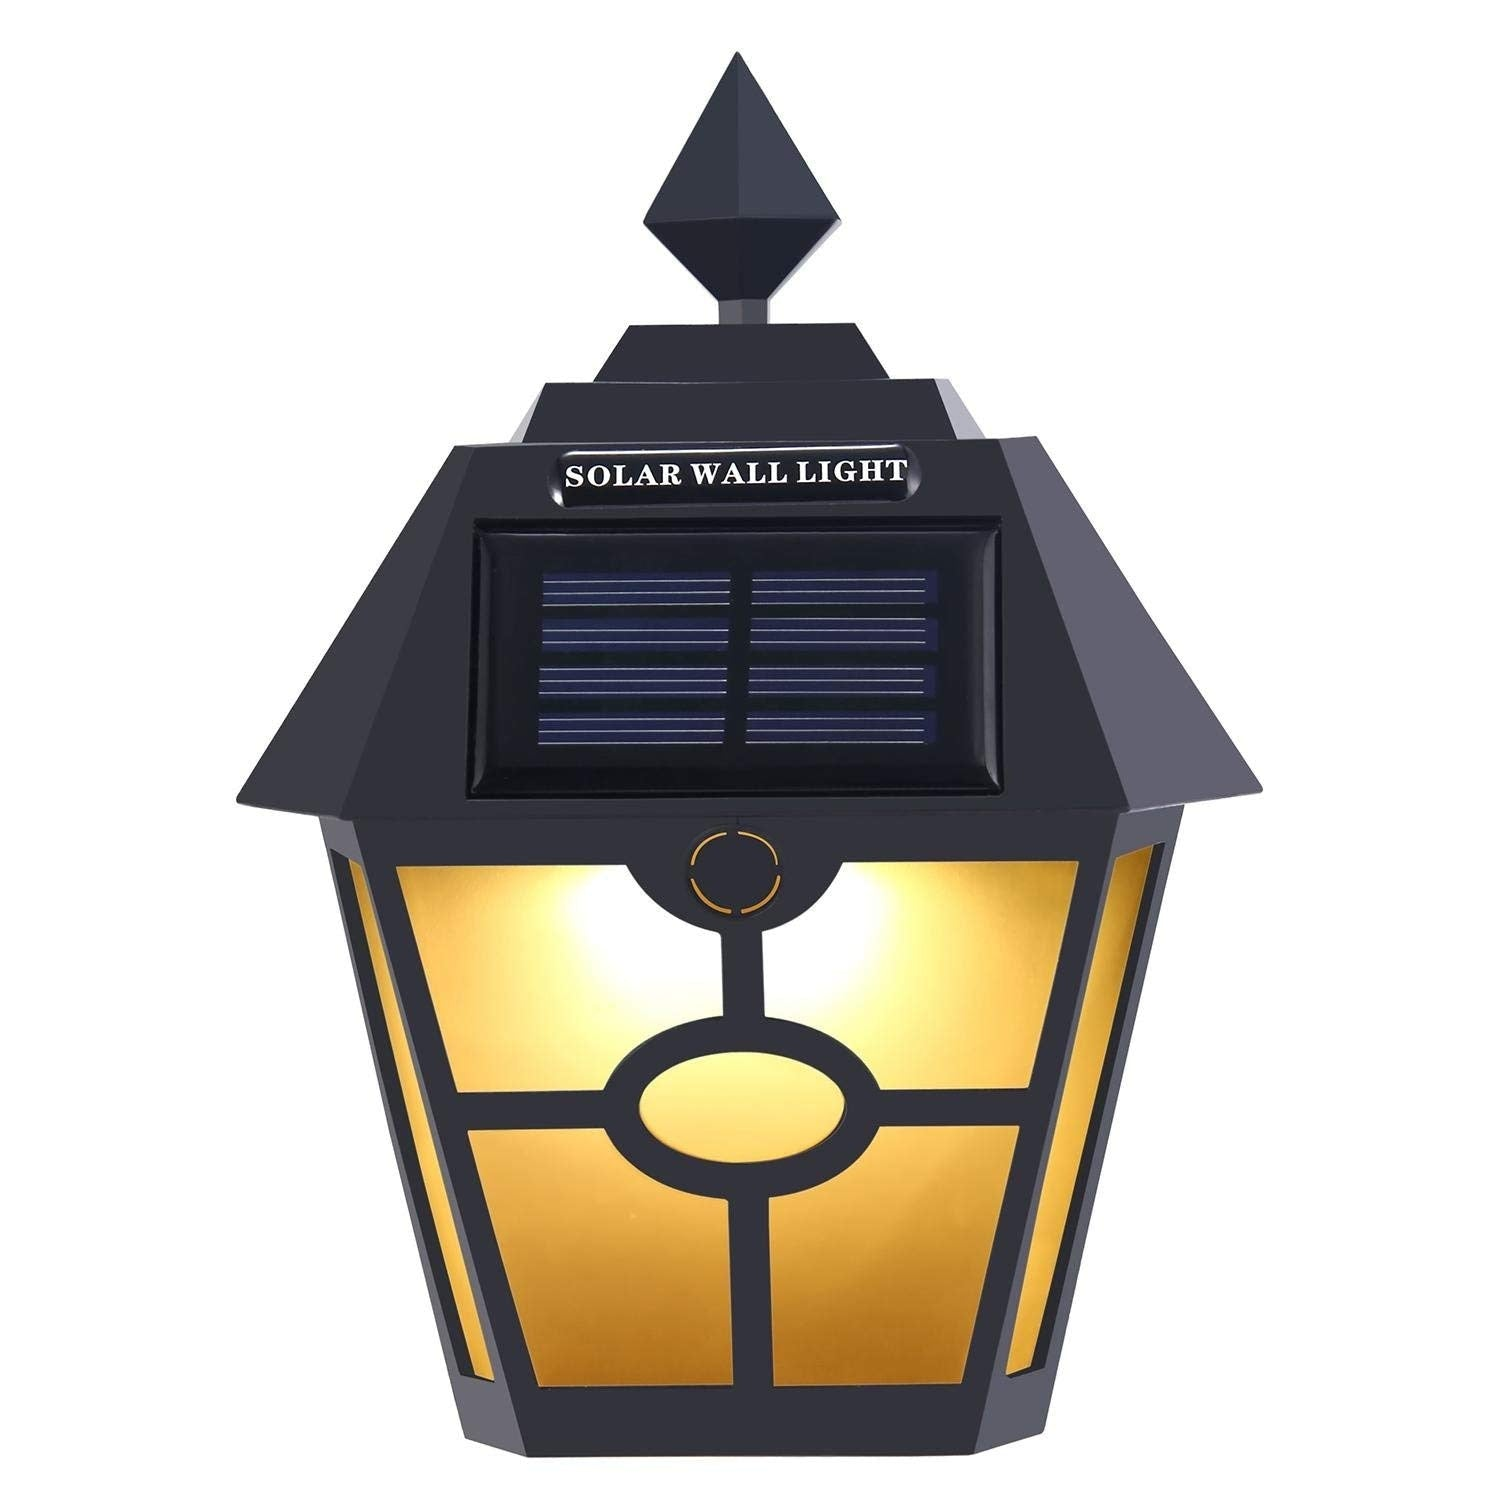 LED Solar Power Sensor plug in sconce Wall Light SMD LED Outdoor Waterproof Energy Saving Street Yard Path Home Garden Security